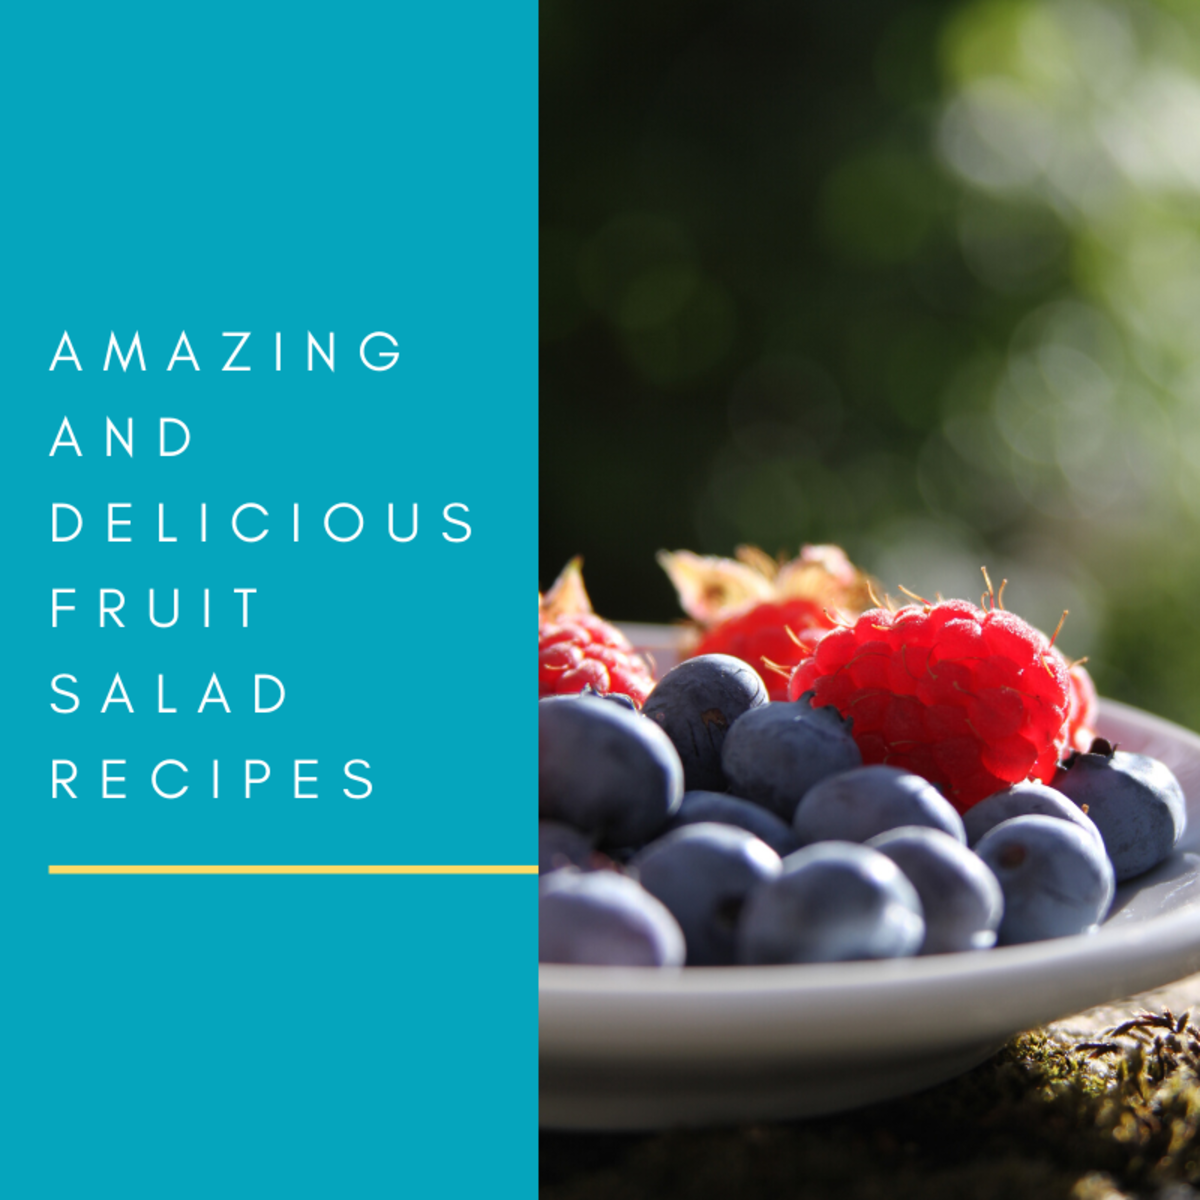 These fruit salad recipes can be enjoyed at any event or gathering.